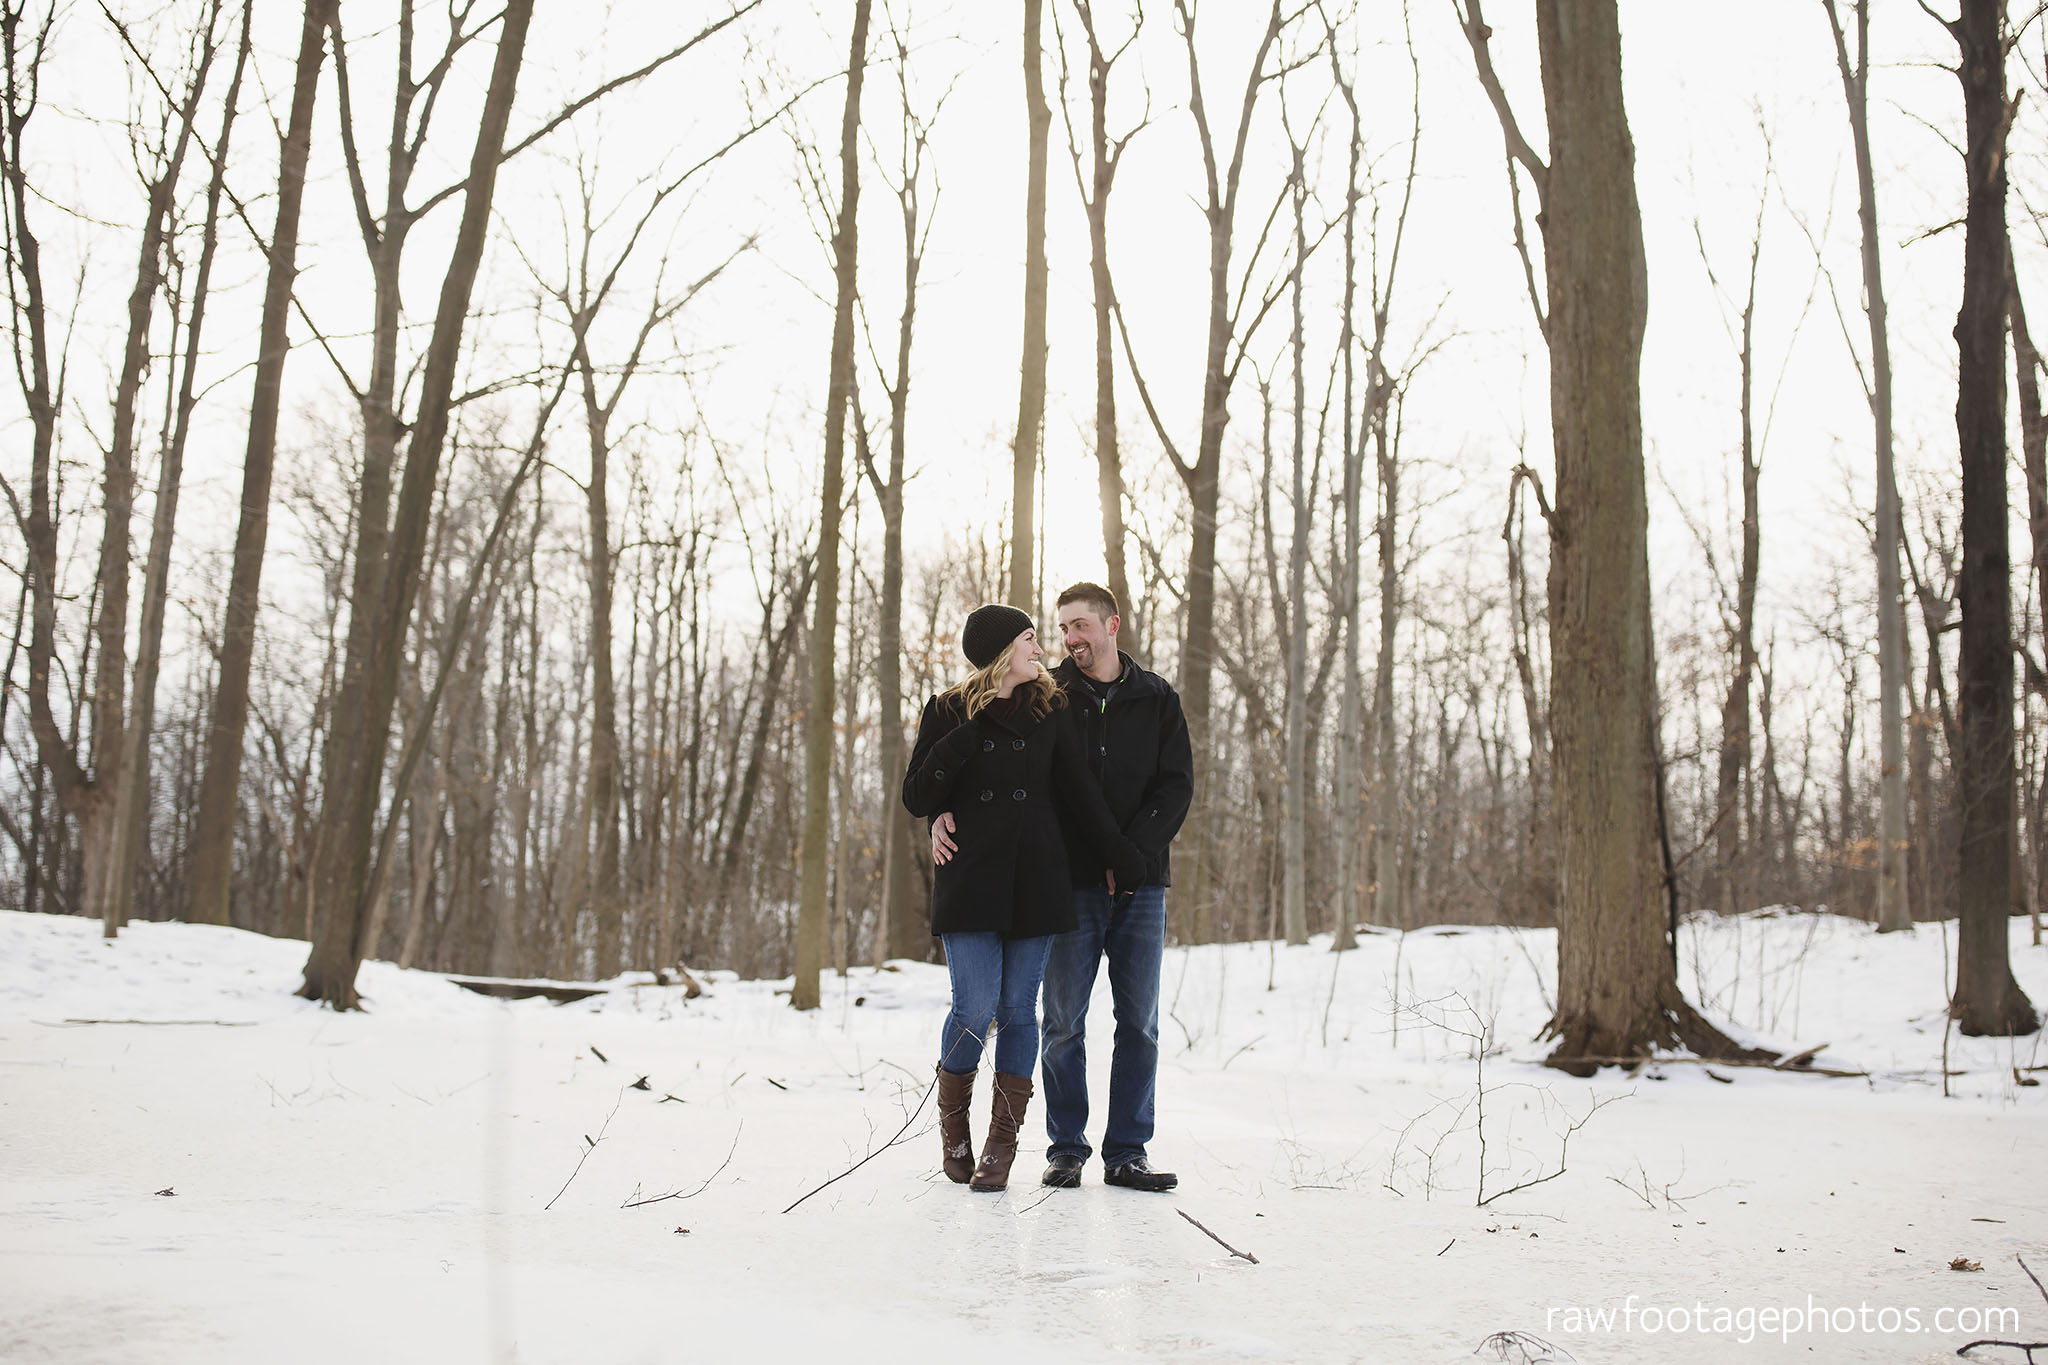 london_ontario_wedding_photographer-engagement_session-winter_engagement_photos-raw_footage_photography010.jpg